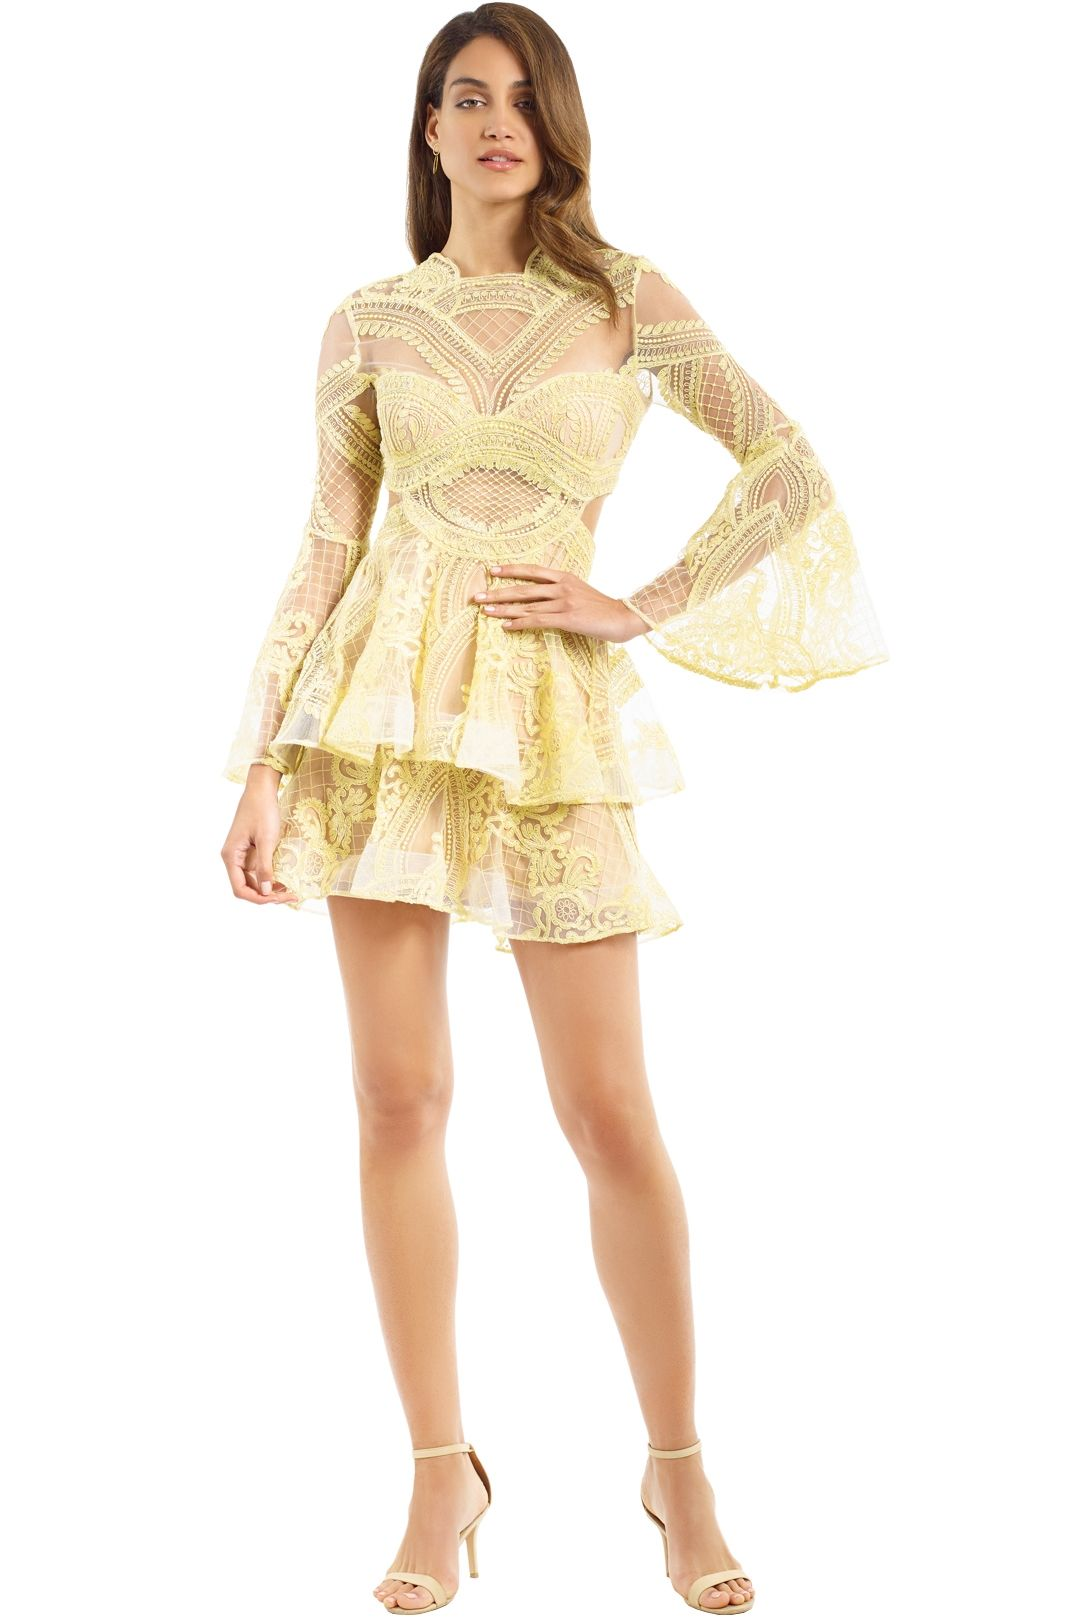 Thurley - Chameleon Mini Dress - Yellow - Front